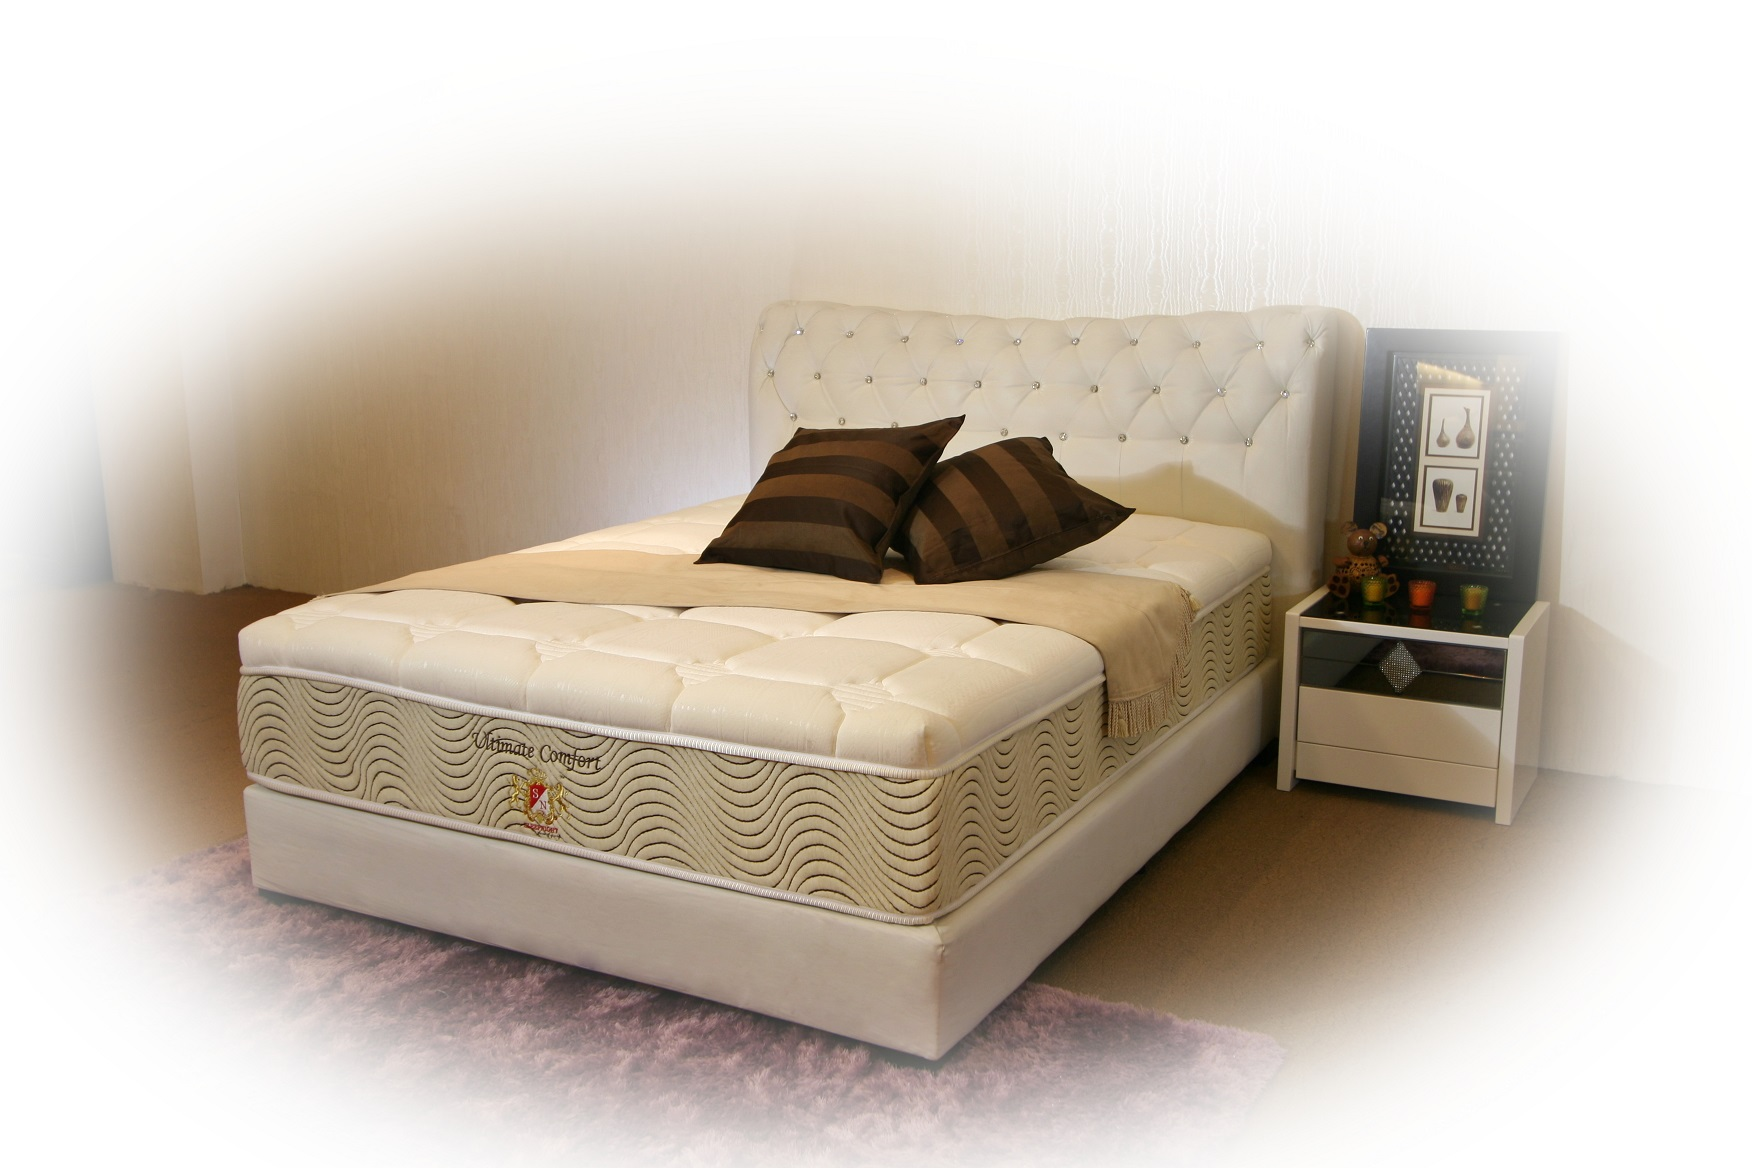 Ultimate Comfort - High Ventilated Convoluted Foam, Multi Zone Pocketed Spring, Visco Elastic Memory Foam Mattress